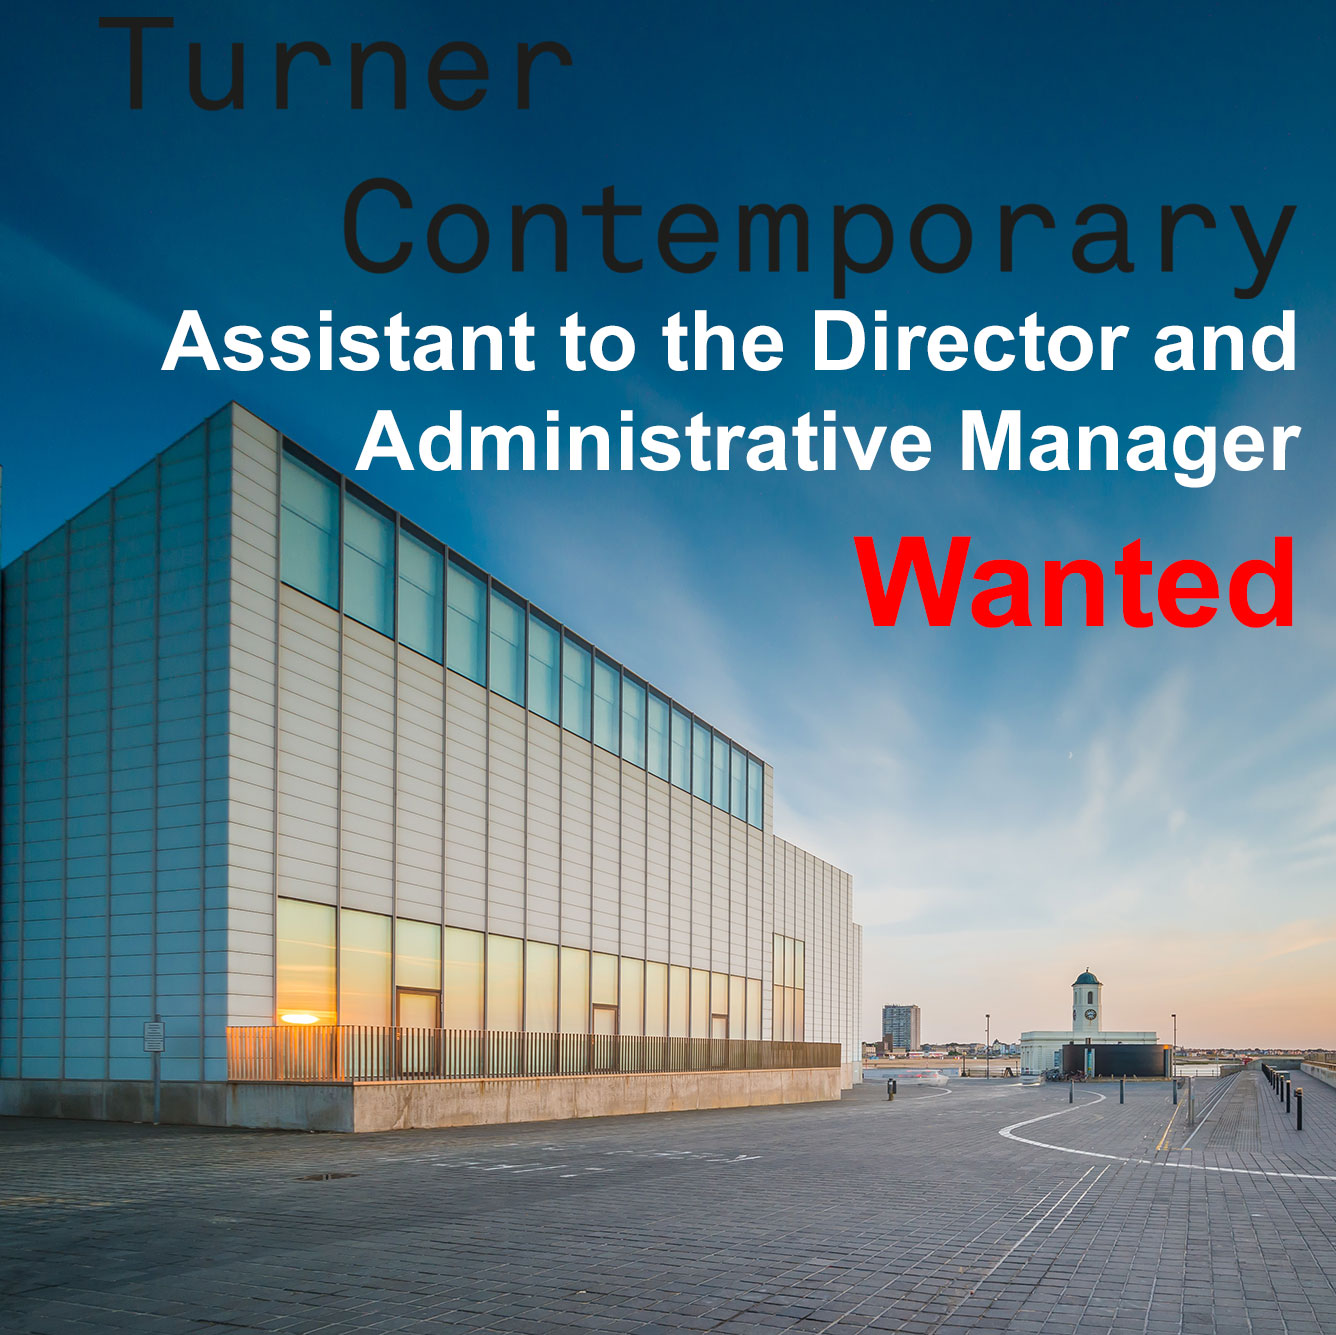 Turner Contemporary Assistant to the Director and Administrative Manager